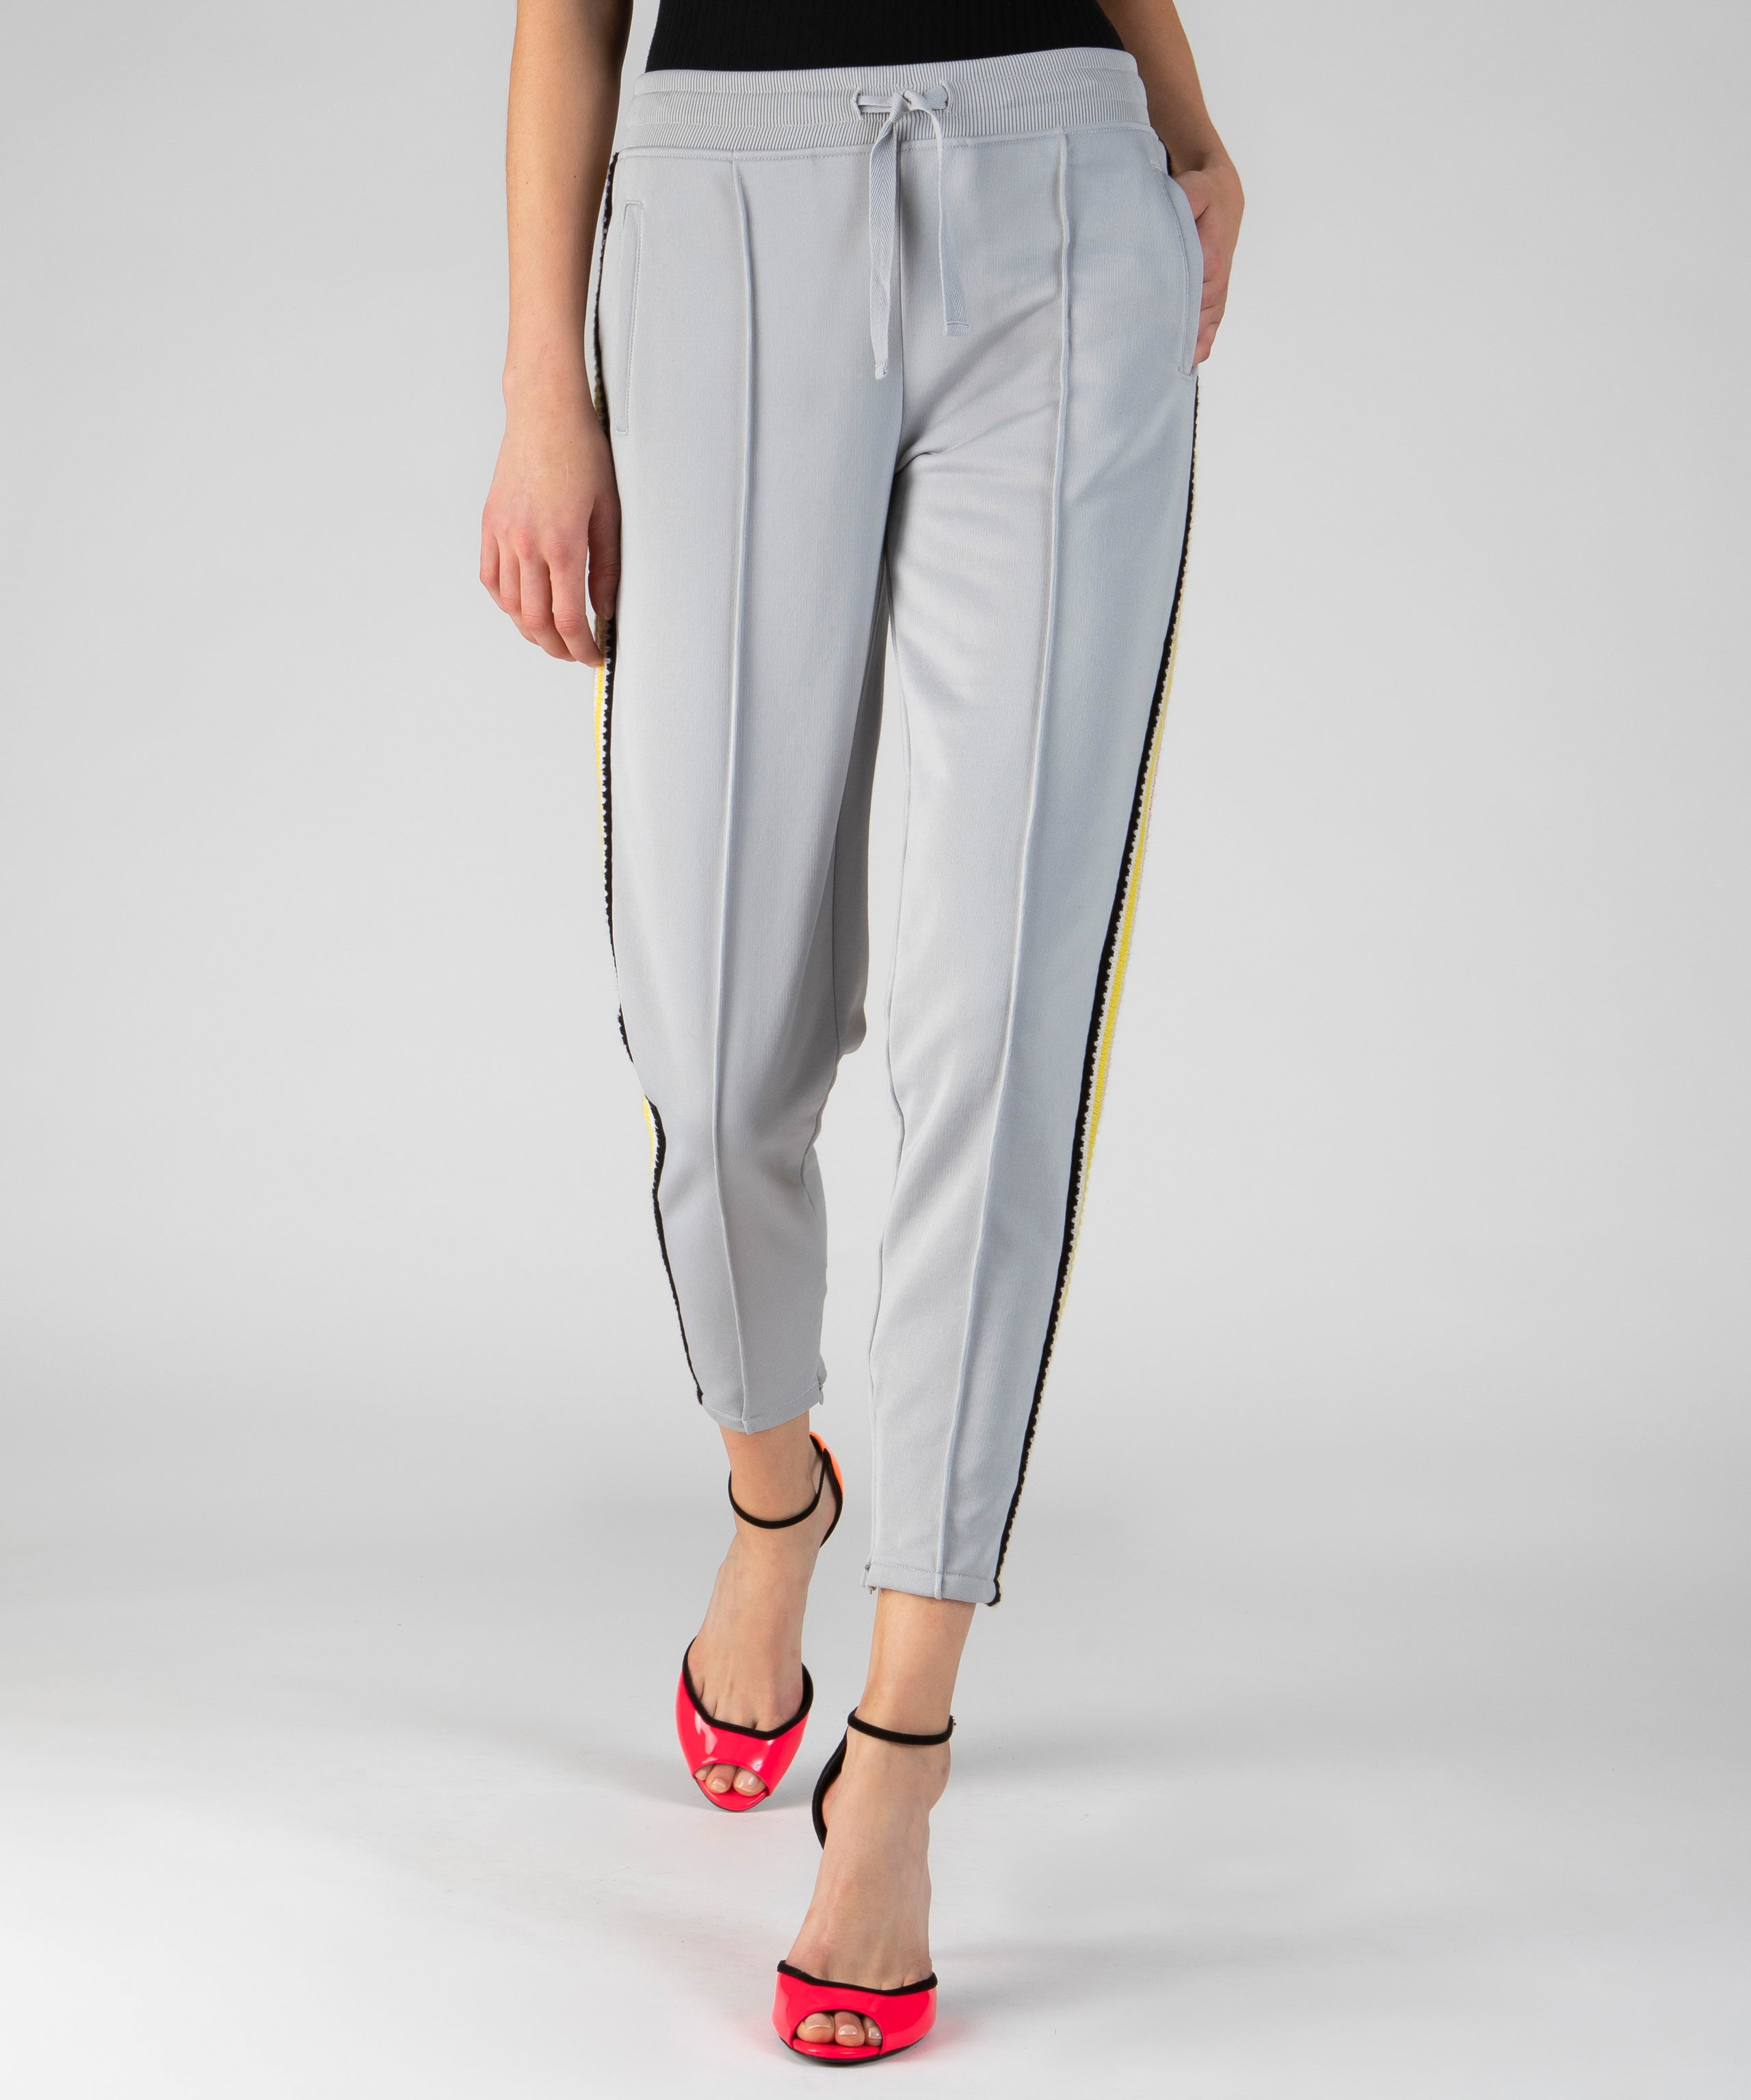 Grey Fog French Terry Crochet Trim Pull-On Pants - Women's Luxe Loungewear by ATM Anthony Thomas Melillo